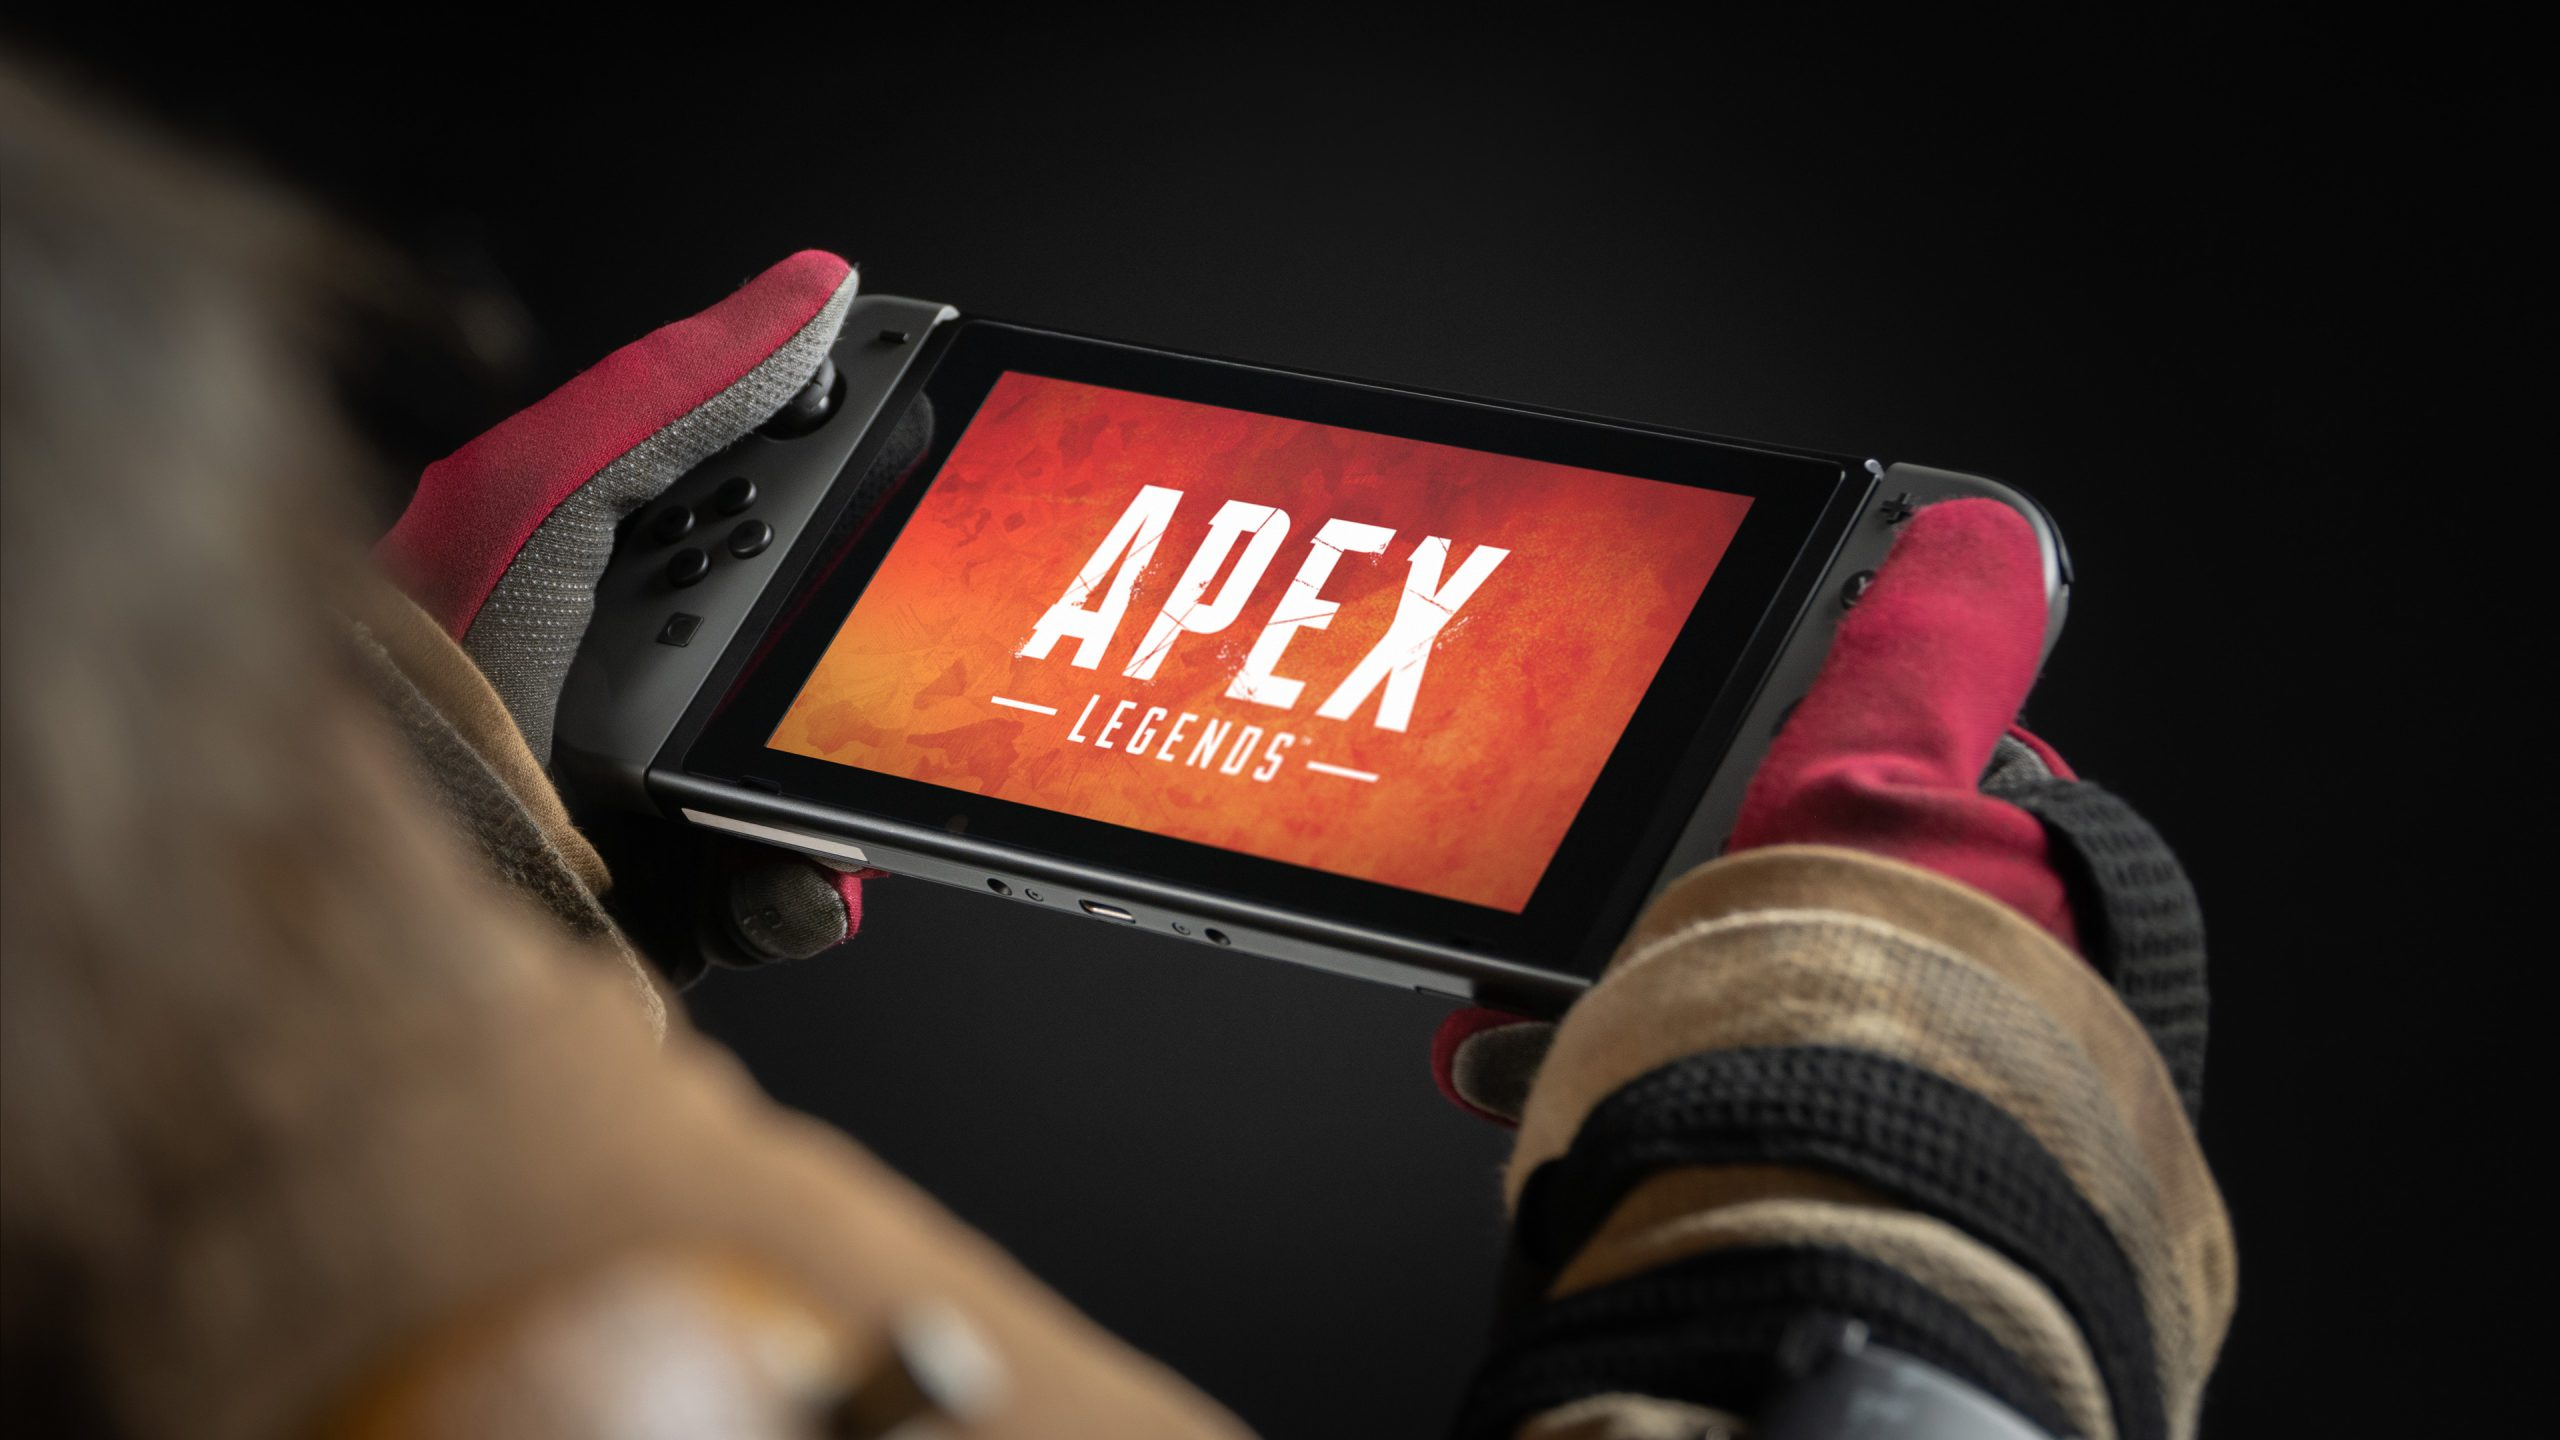 Ea1Jmu4X0AIhtXF scaled - 【朗報】APEXついにSwitchに登場!!!